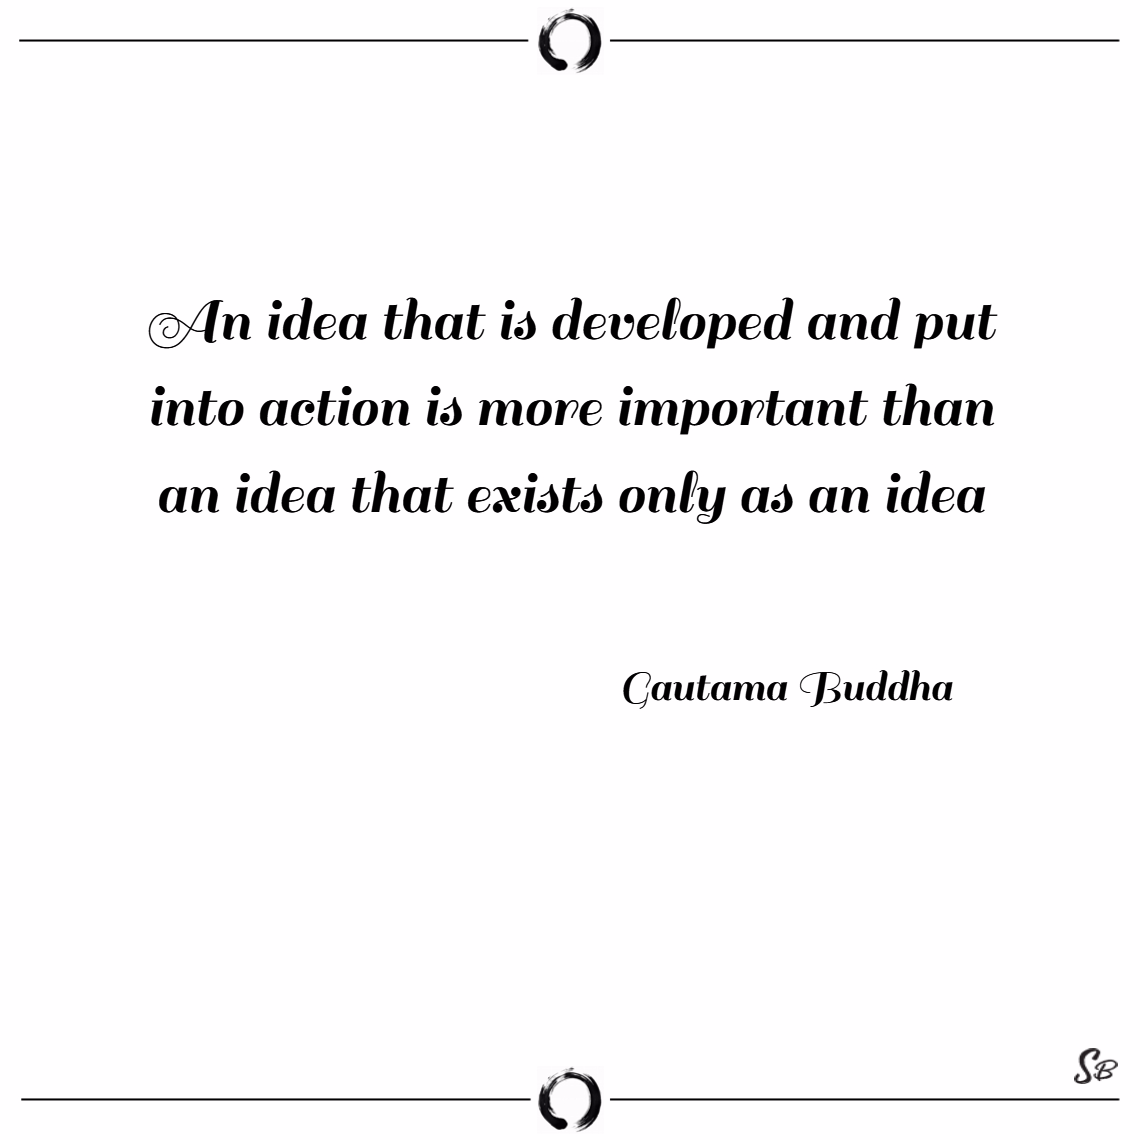 An idea that is developed and put into action is more important than an idea that exists only as an idea. – gautama buddha